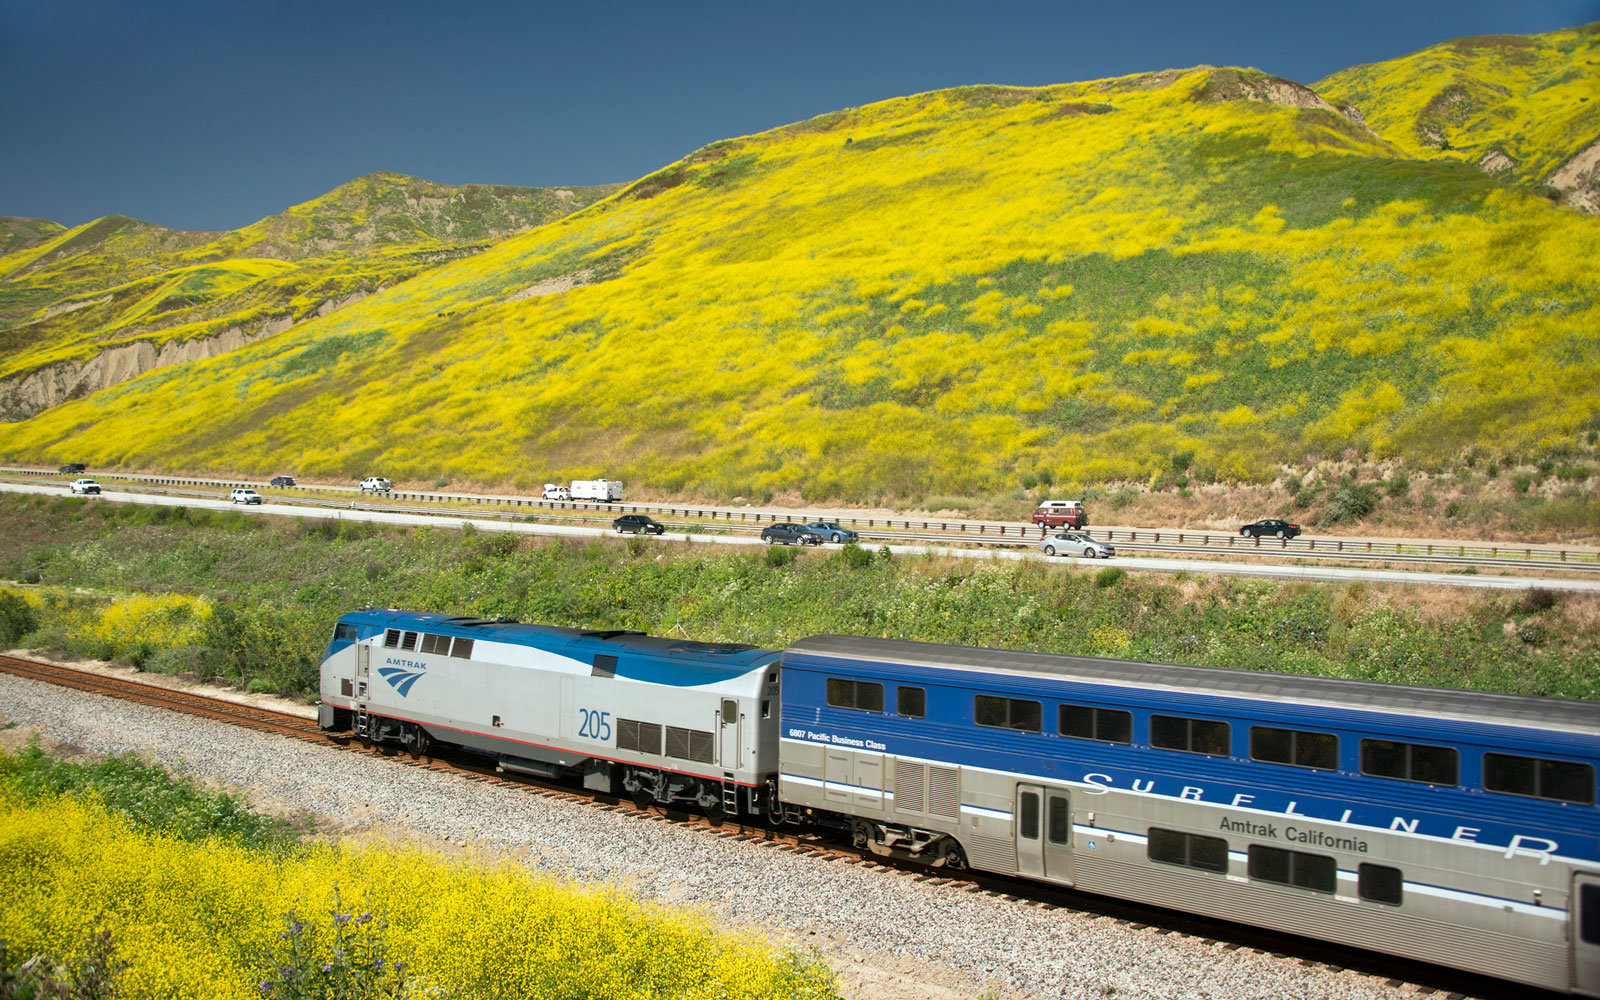 Amtrak Is Having a Father's Day Flash Sale With Fares As Low As $22